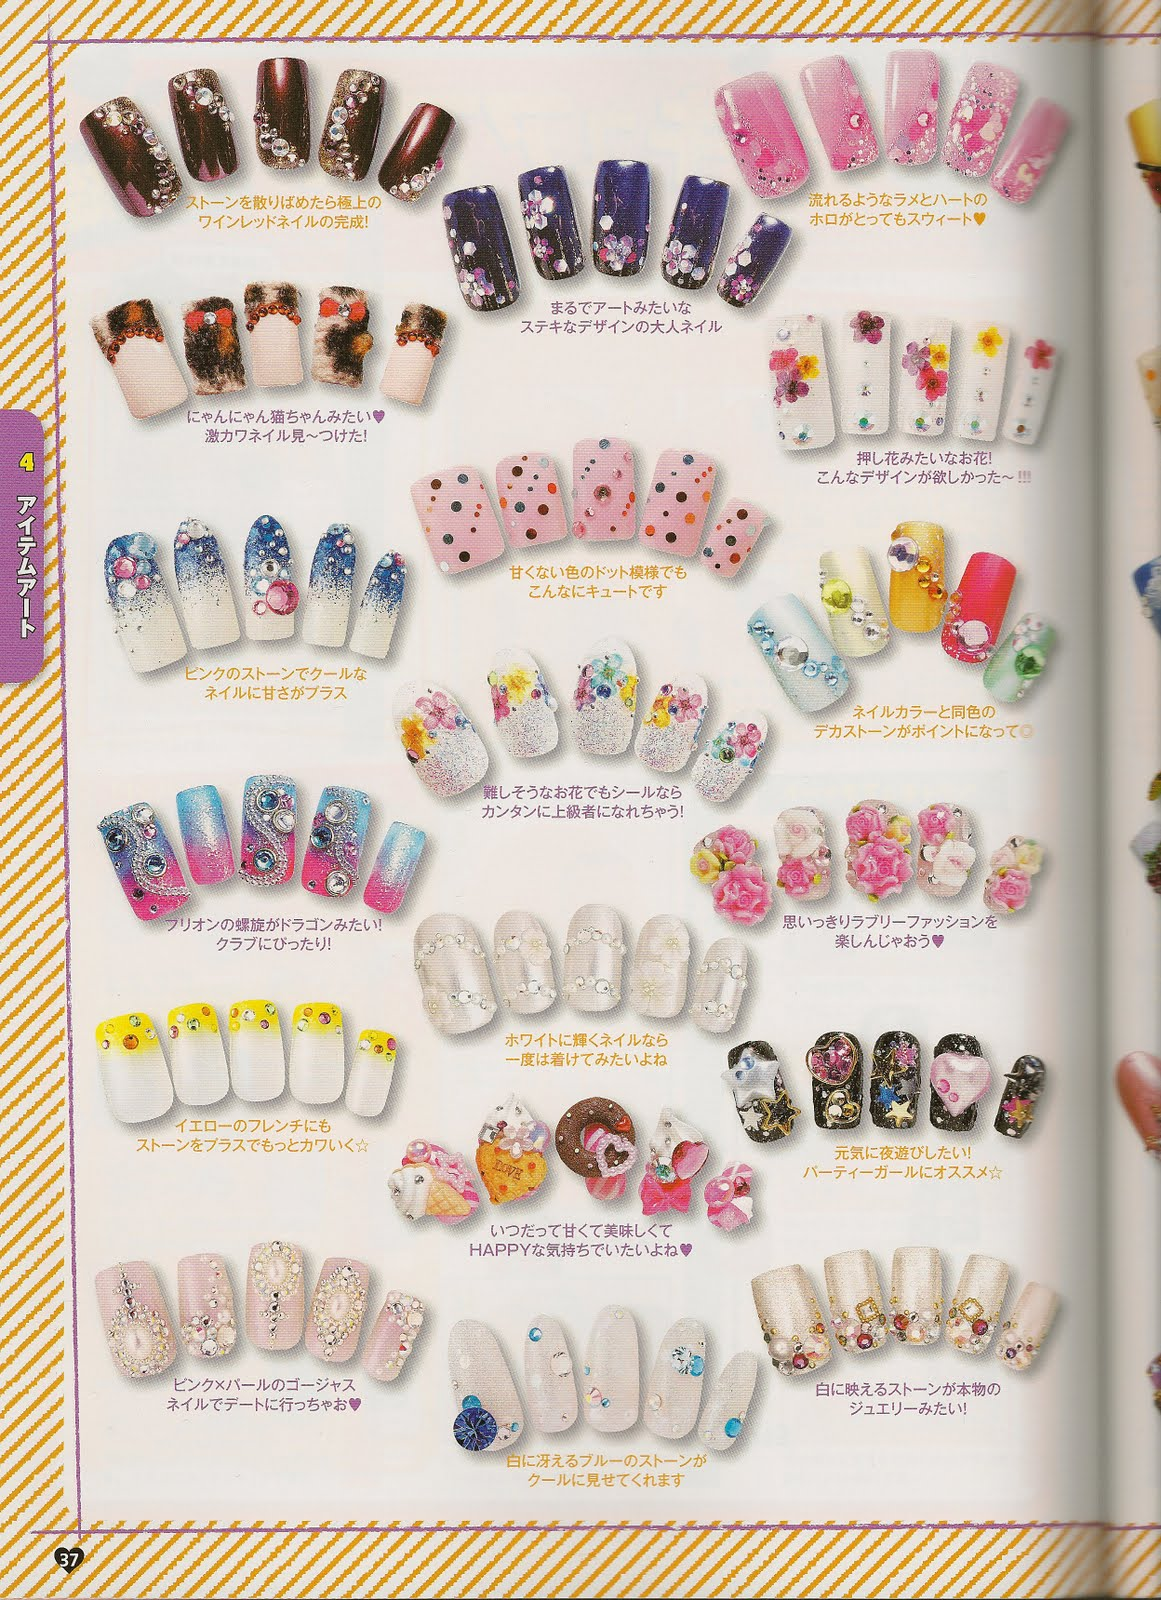 My little world of polish by Lily Nail: japanese nail art magazine